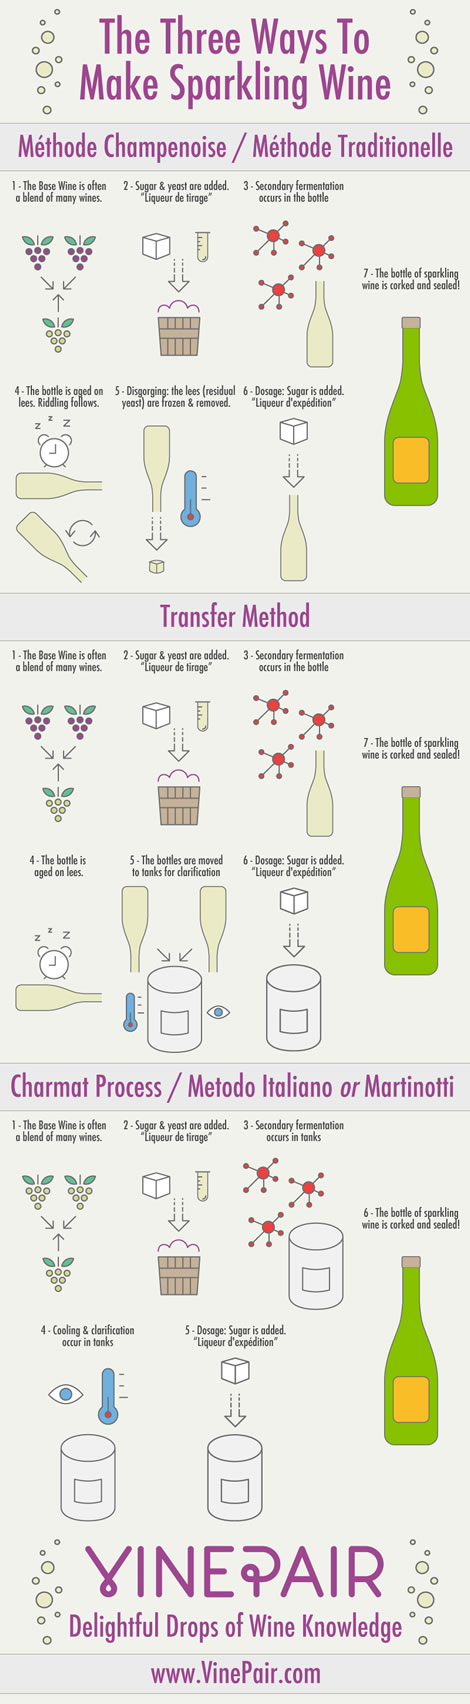 how-to-make-sparkling-wine-infographic